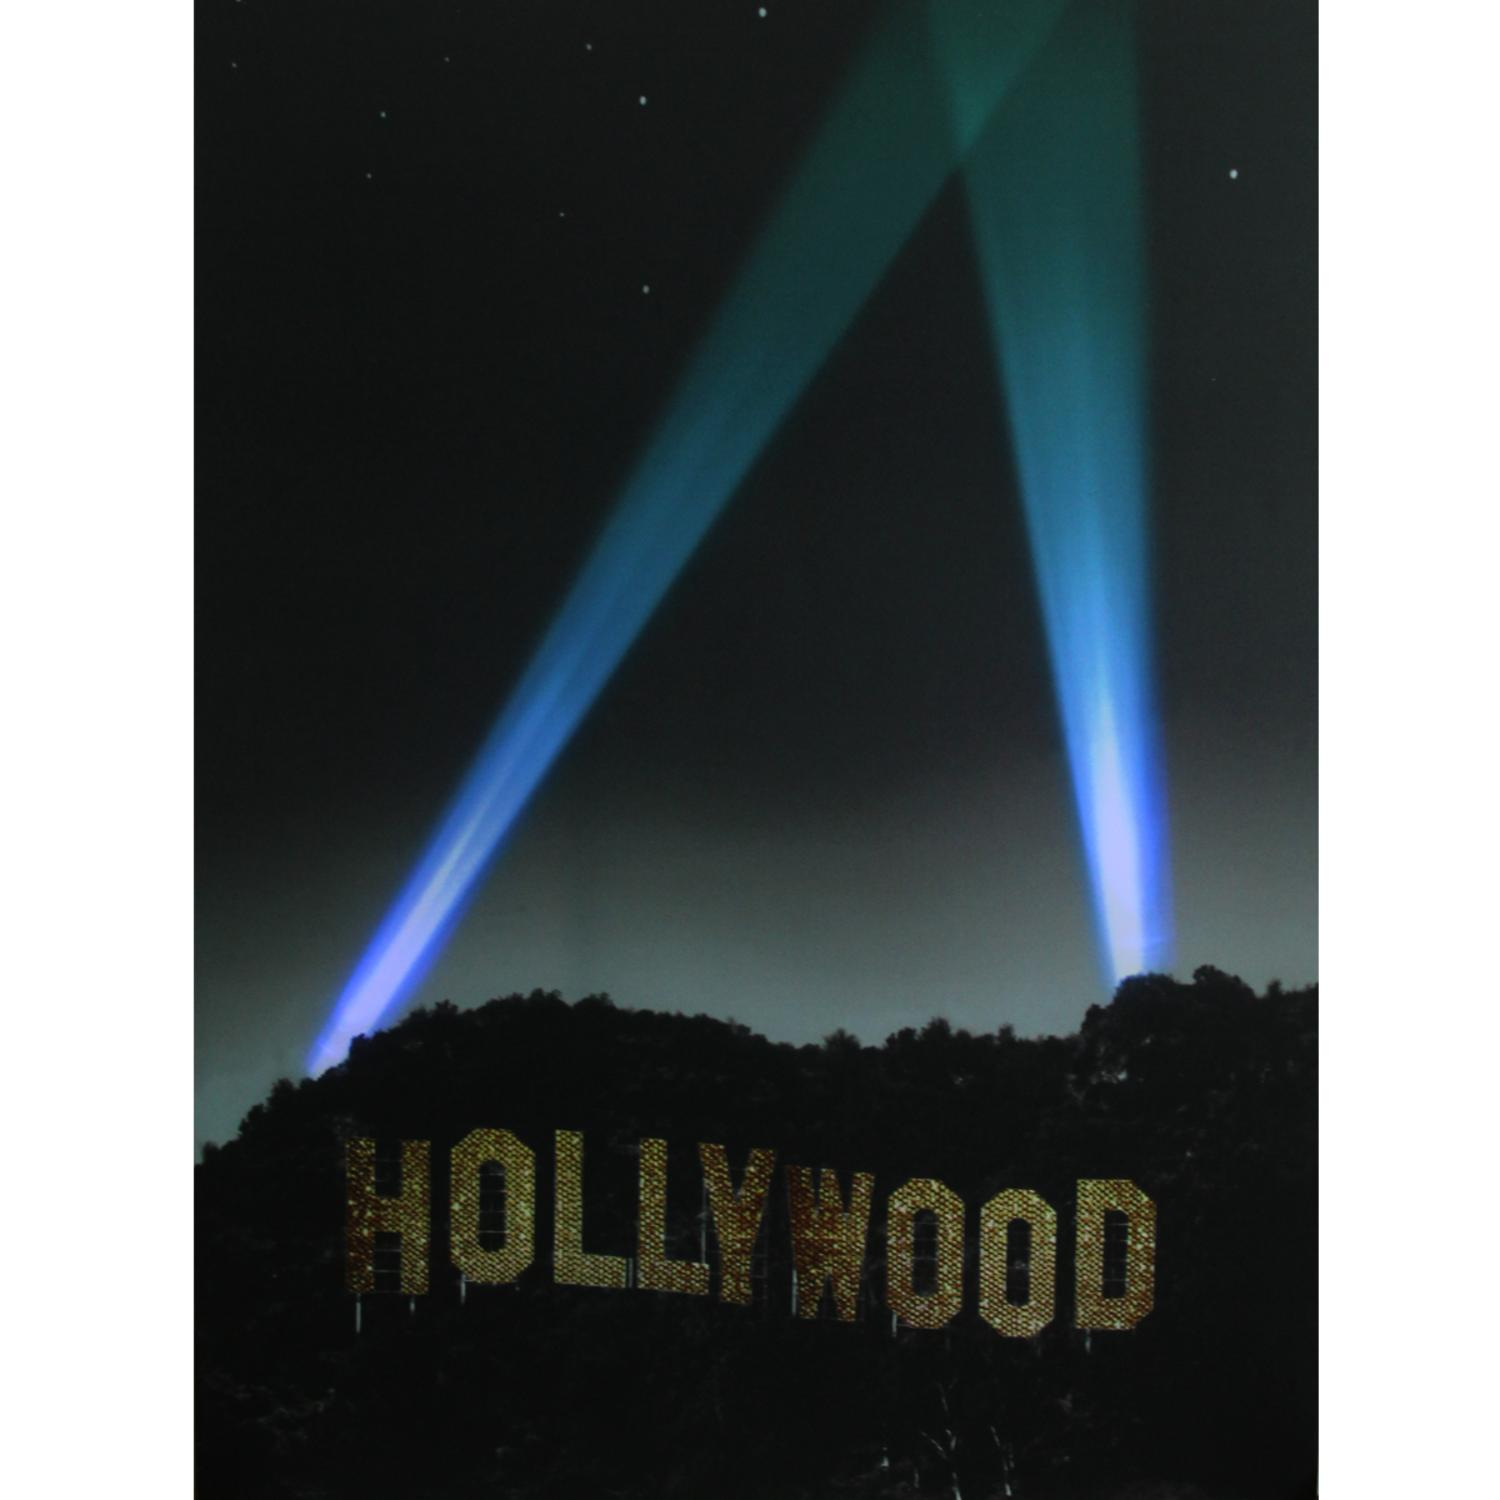 ''LED Lighted Hollywood SIGN with Spot Lights Canvas Wall Art 19.5'''' x 27.5''''''